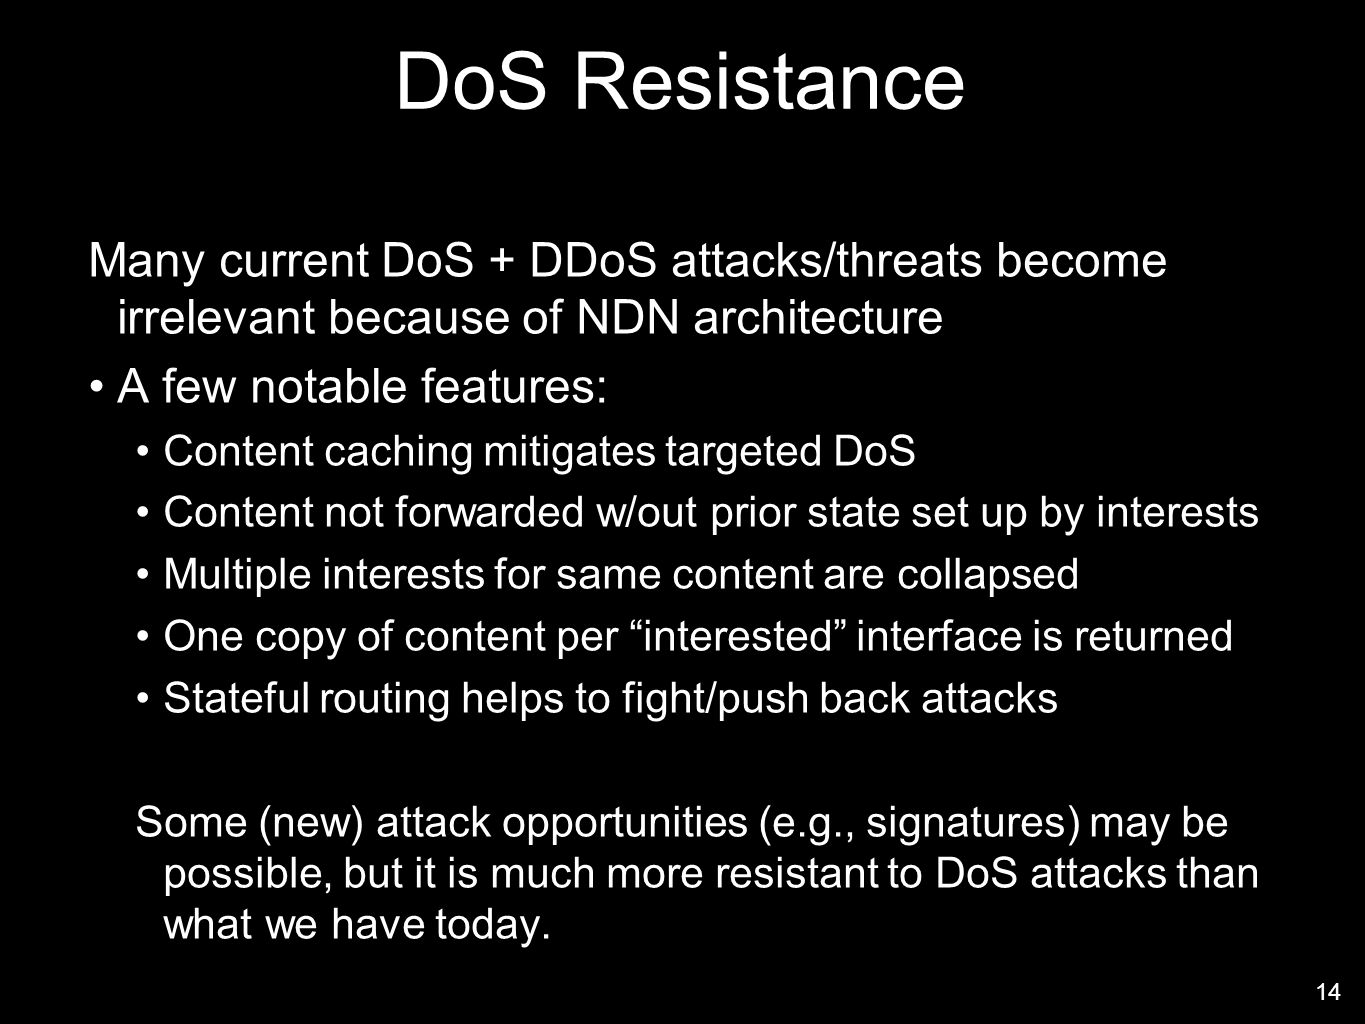 DoS Resistance Many current DoS + DDoS attacks/threats become irrelevant because of NDN architecture A few notable features: Content caching mitigates targeted DoS Content not forwarded w/out prior state set up by interests Multiple interests for same content are collapsed One copy of content per interested interface is returned Stateful routing helps to fight/push back attacks Some (new) attack opportunities (e.g., signatures) may be possible, but it is much more resistant to DoS attacks than what we have today.